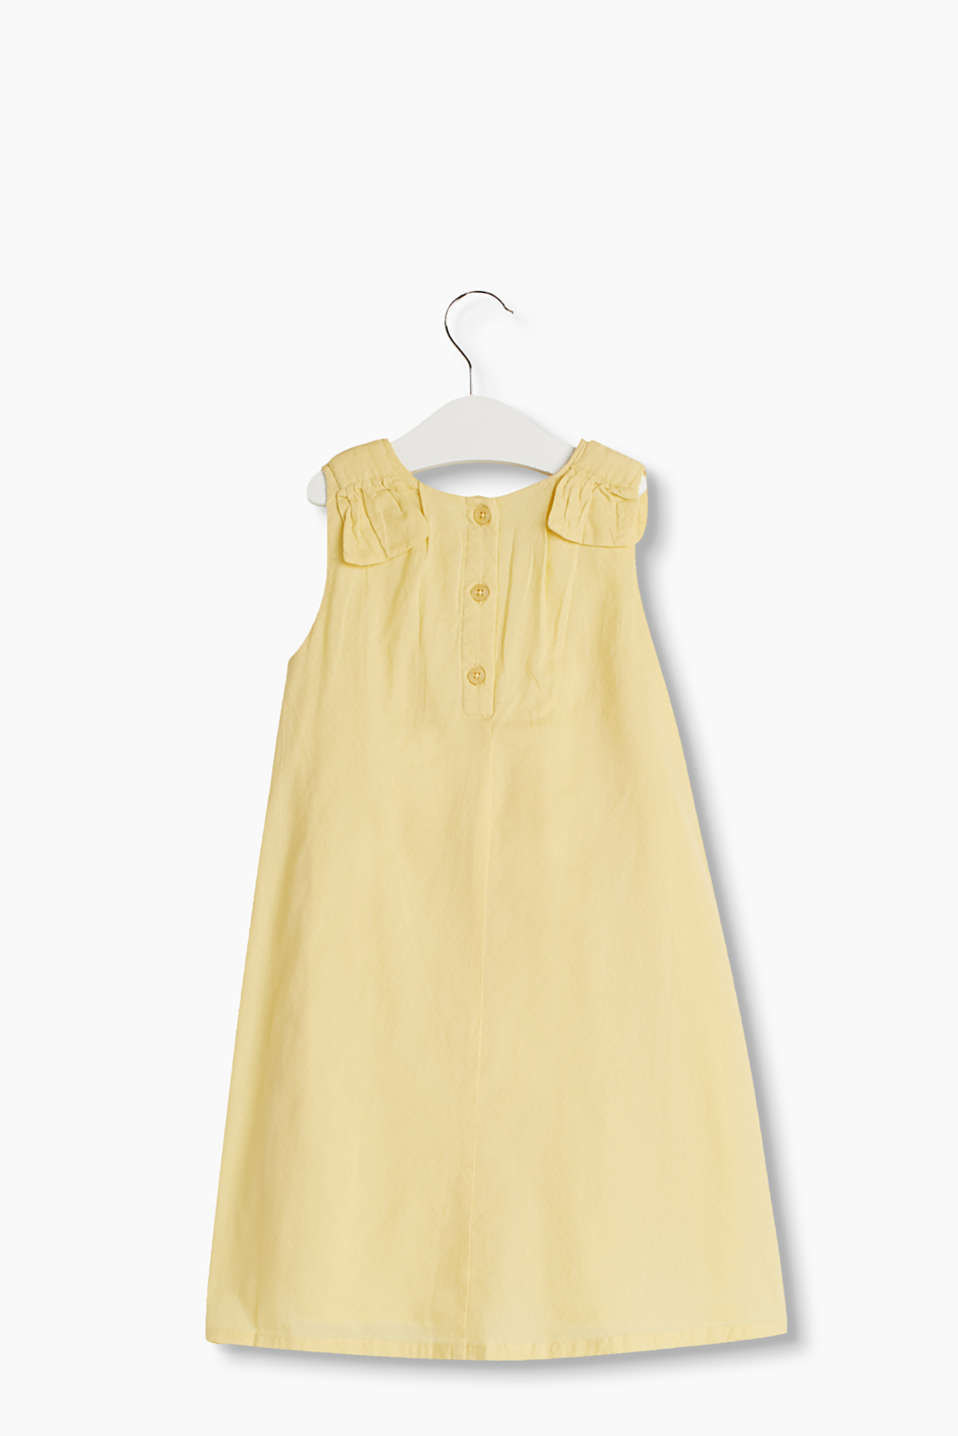 Flared A-line cotton dress with pretty bow details on the shoulders and a fine woven pattern.